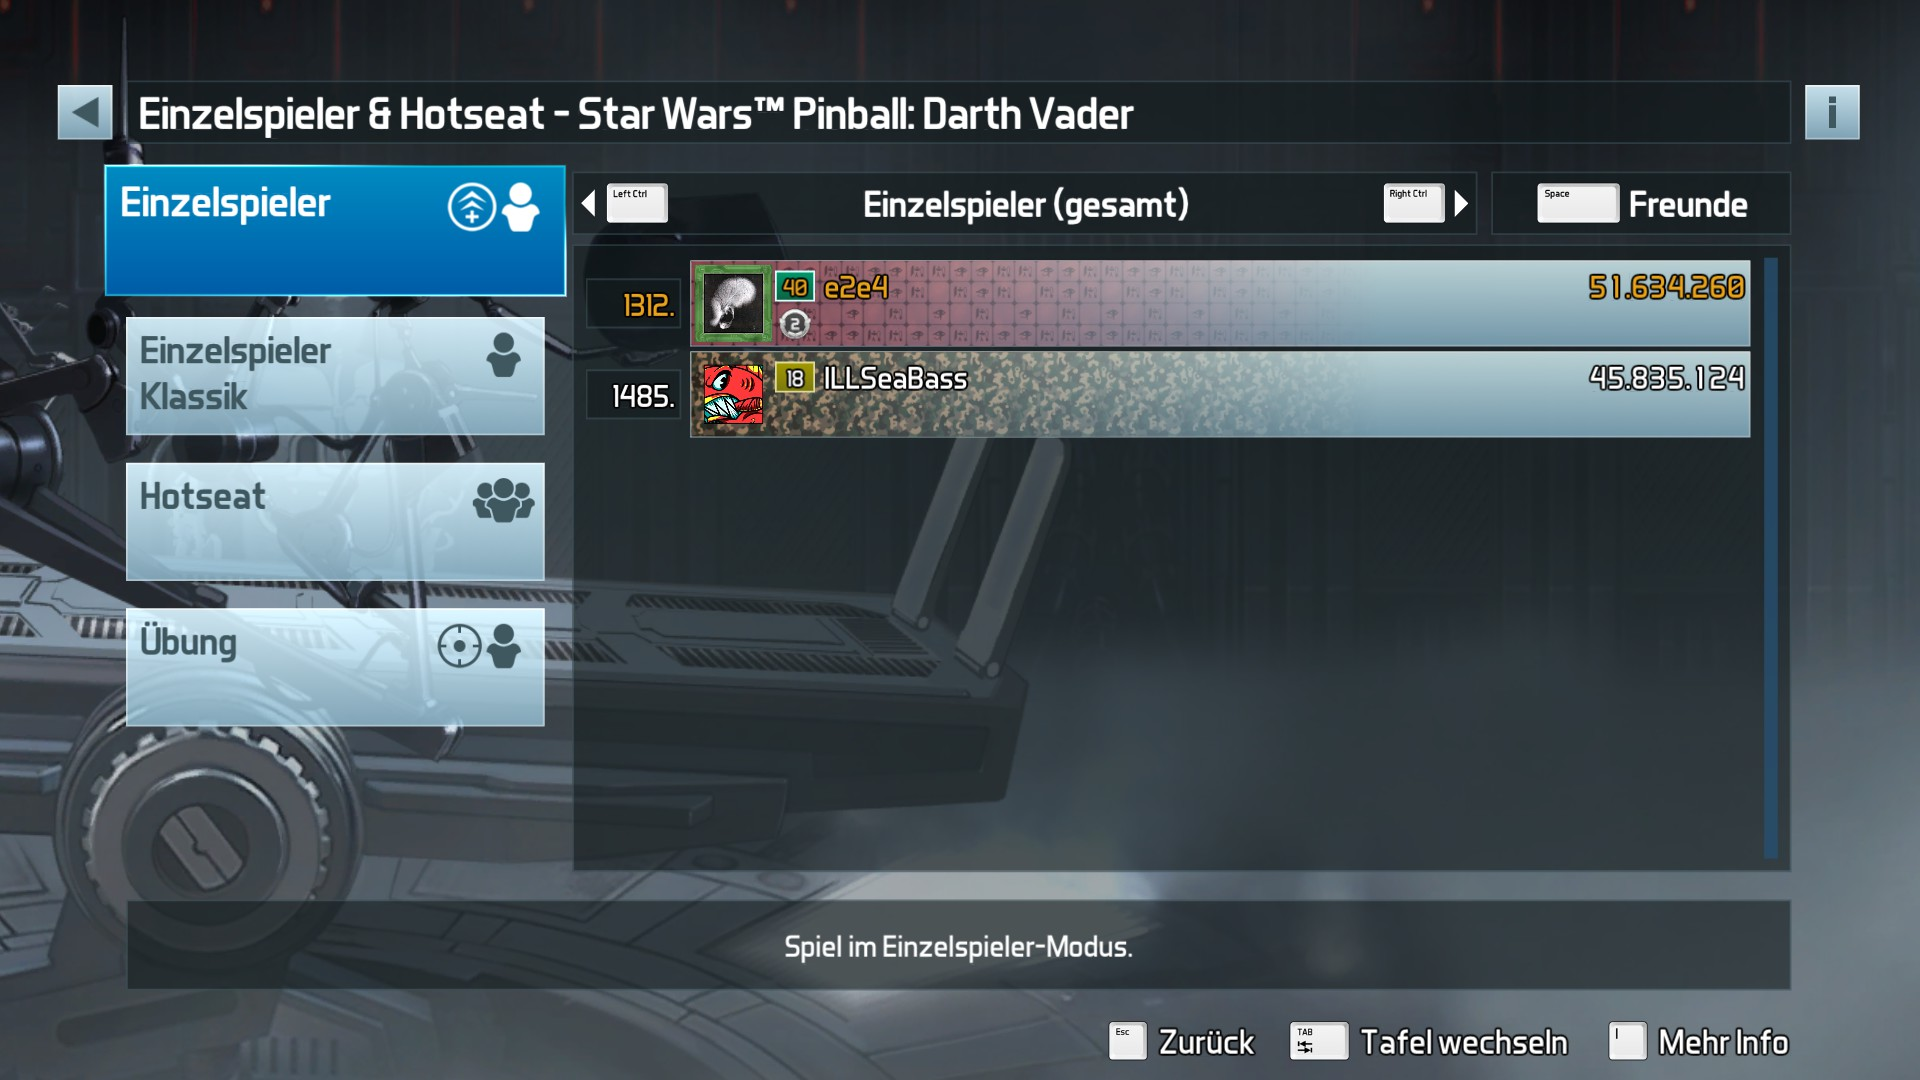 e2e4: Pinball FX3: Star Wars Pinball: Darth Vader (PC) 51,634,260 points on 2017-11-23 23:48:36